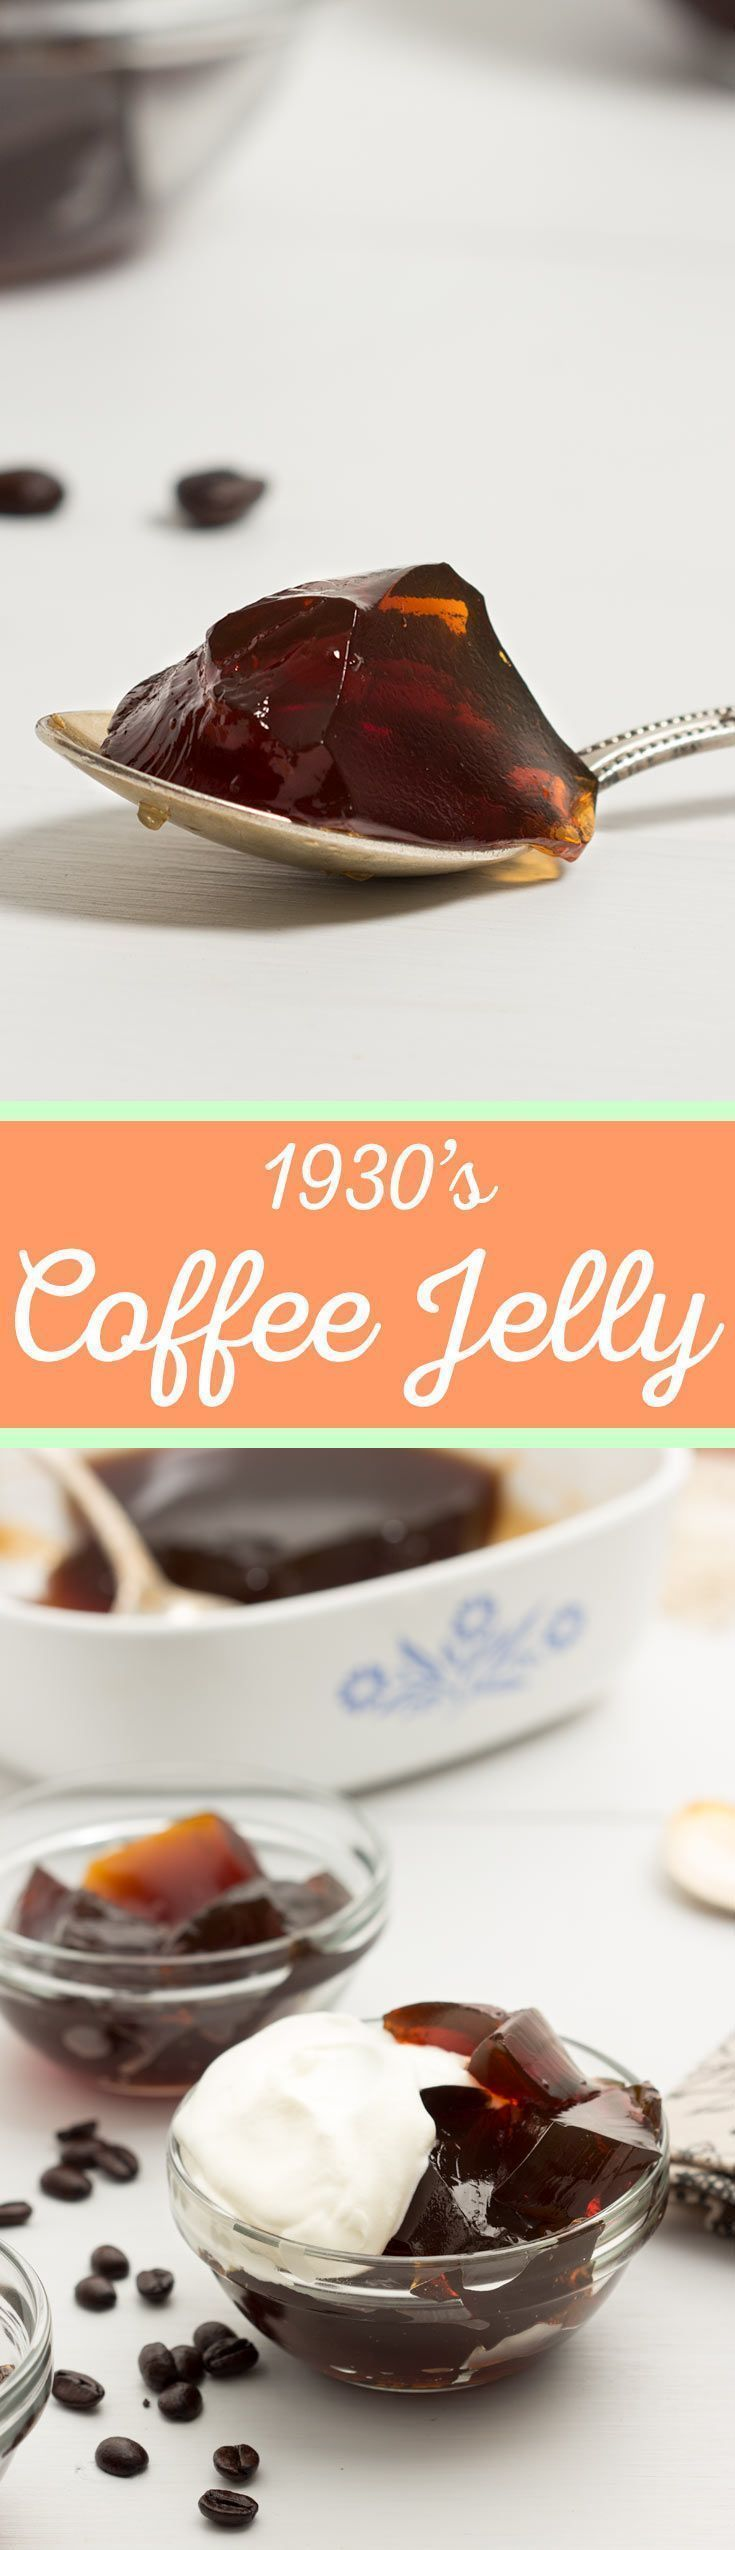 How to Make Coffee Jelly | Recipe | Coffee jelly, Coffee ...